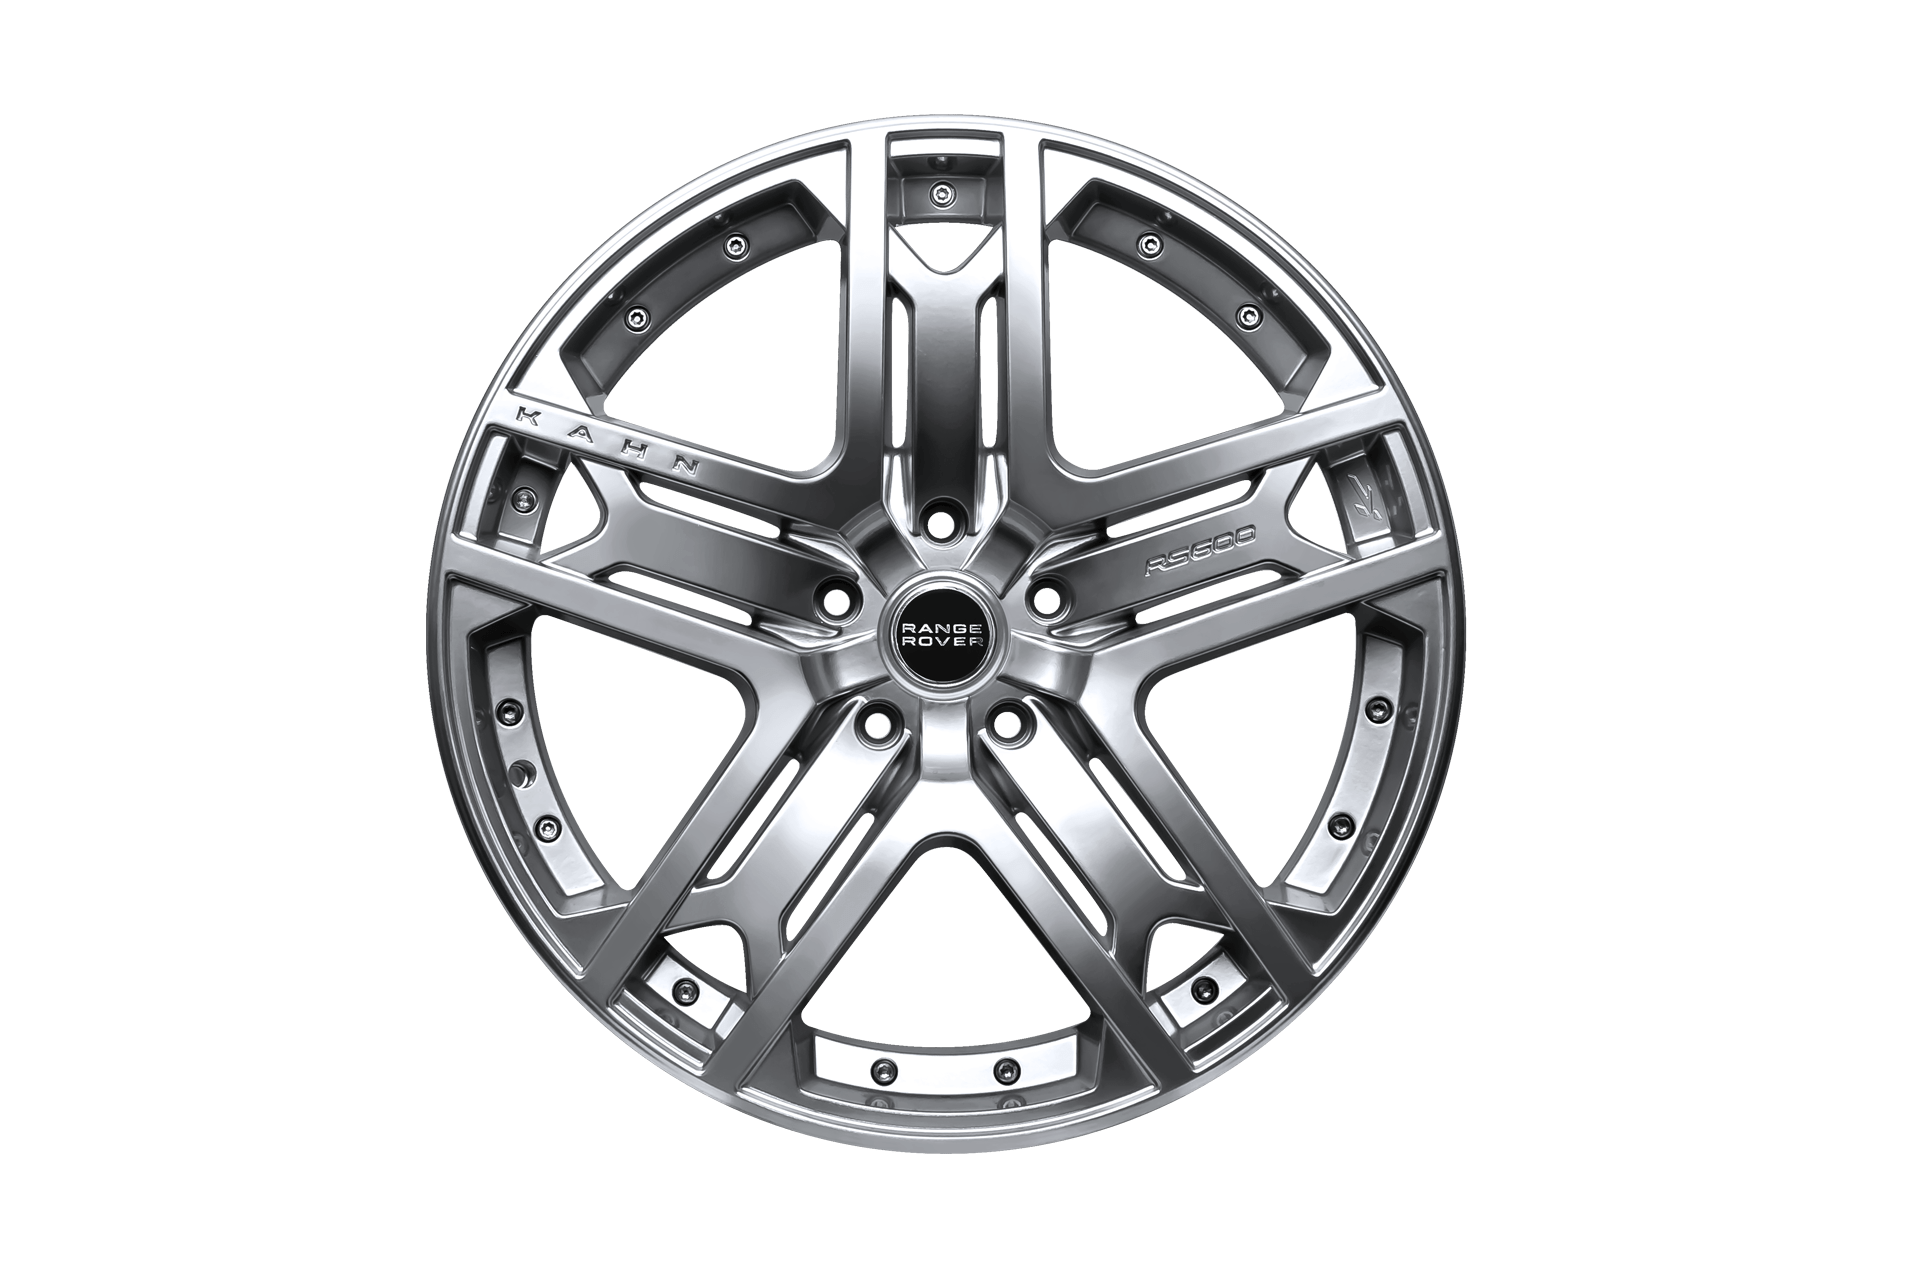 Range Rover (2018-Present) Rs600 Light Alloy Wheels by Kahn - Image 2656